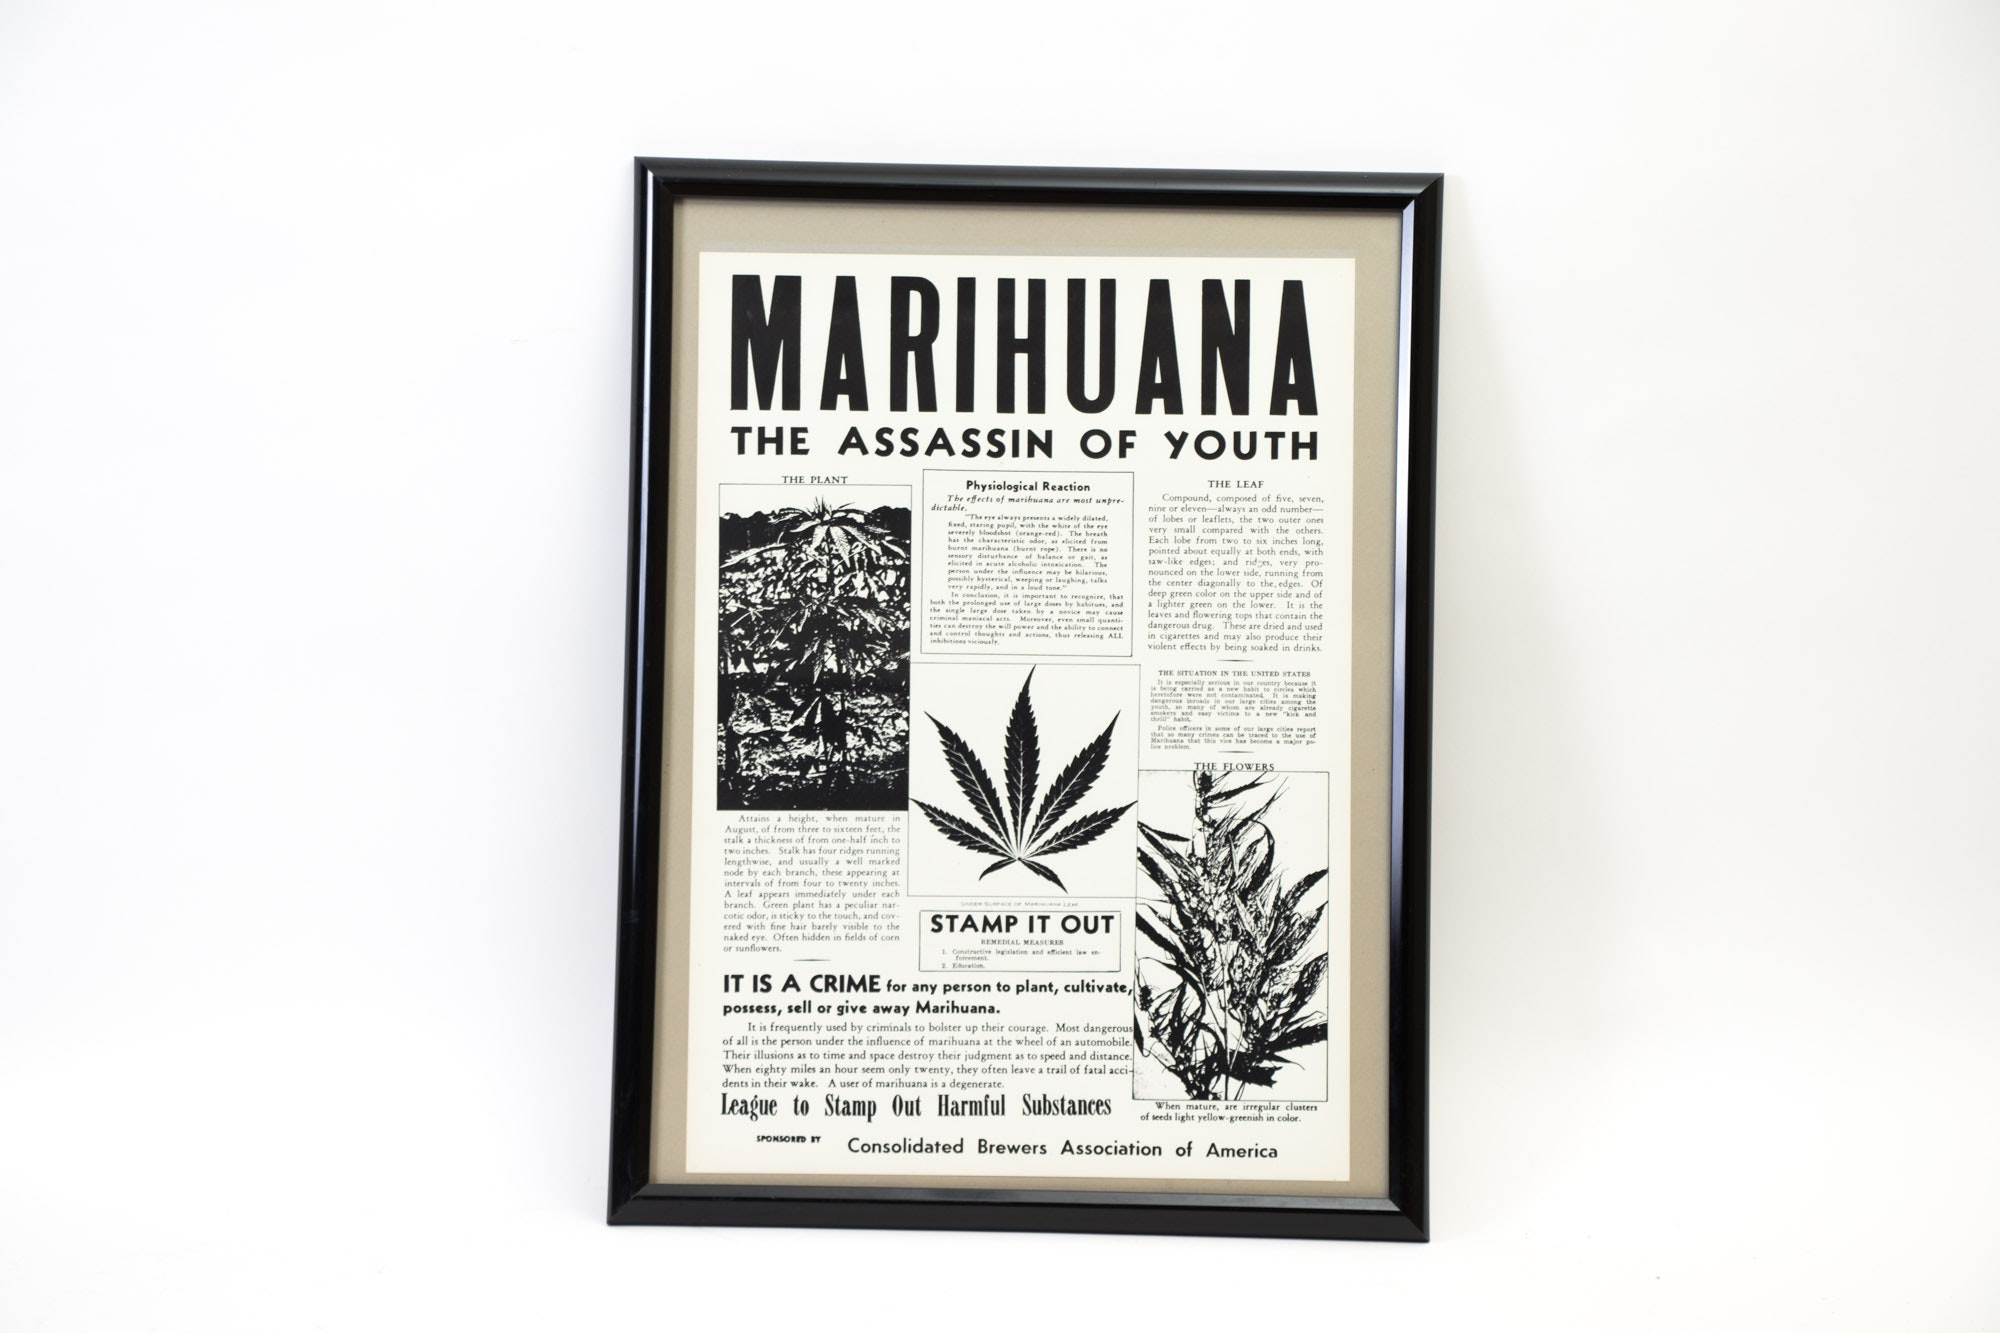 """Vintage Consolidated Brewers Association of America """"Marihuana"""" Poster"""